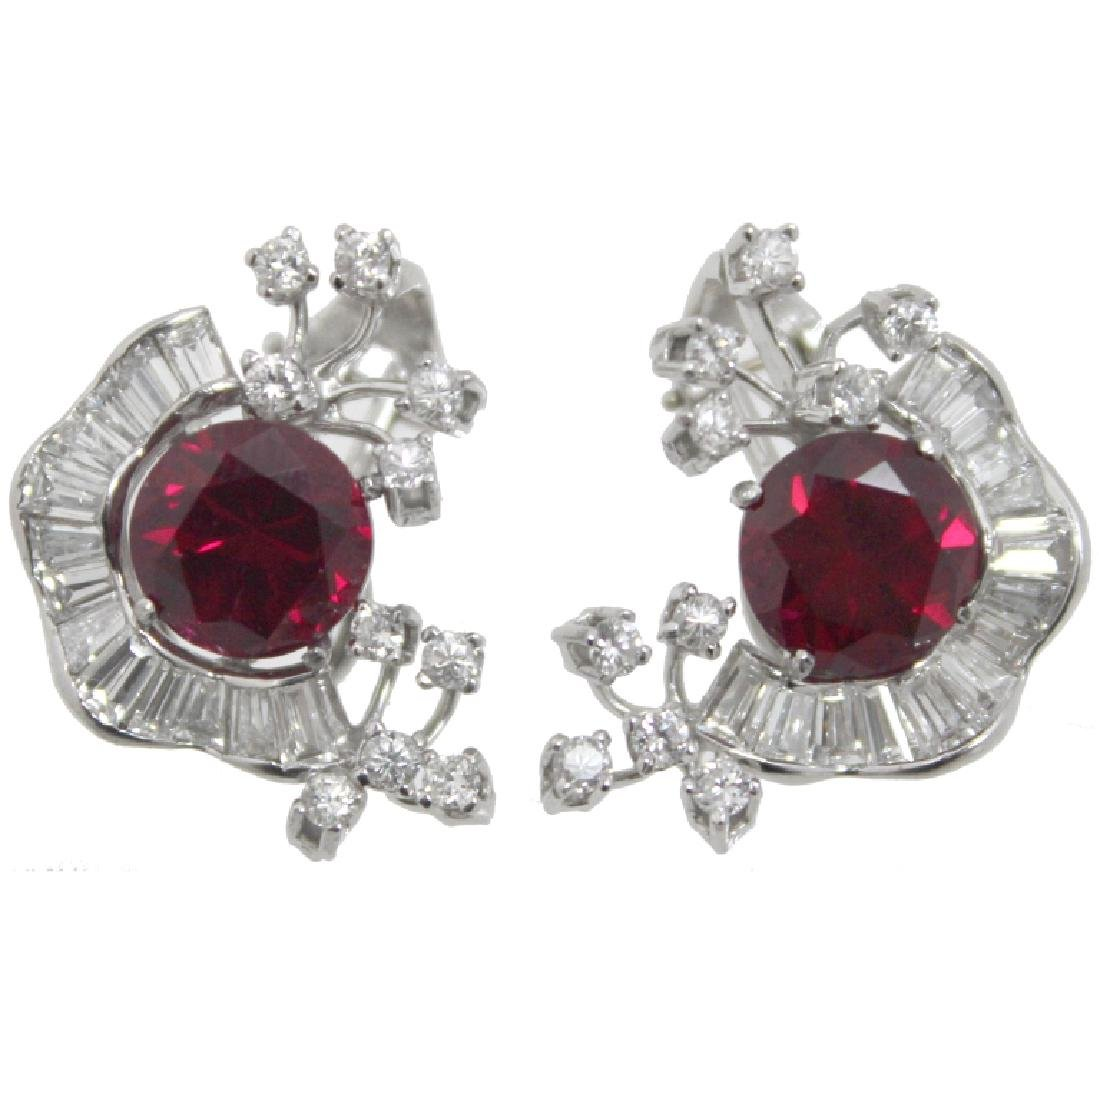 PAIR OF SYNTHETIC RUBY & DIAMOND EARRINGS